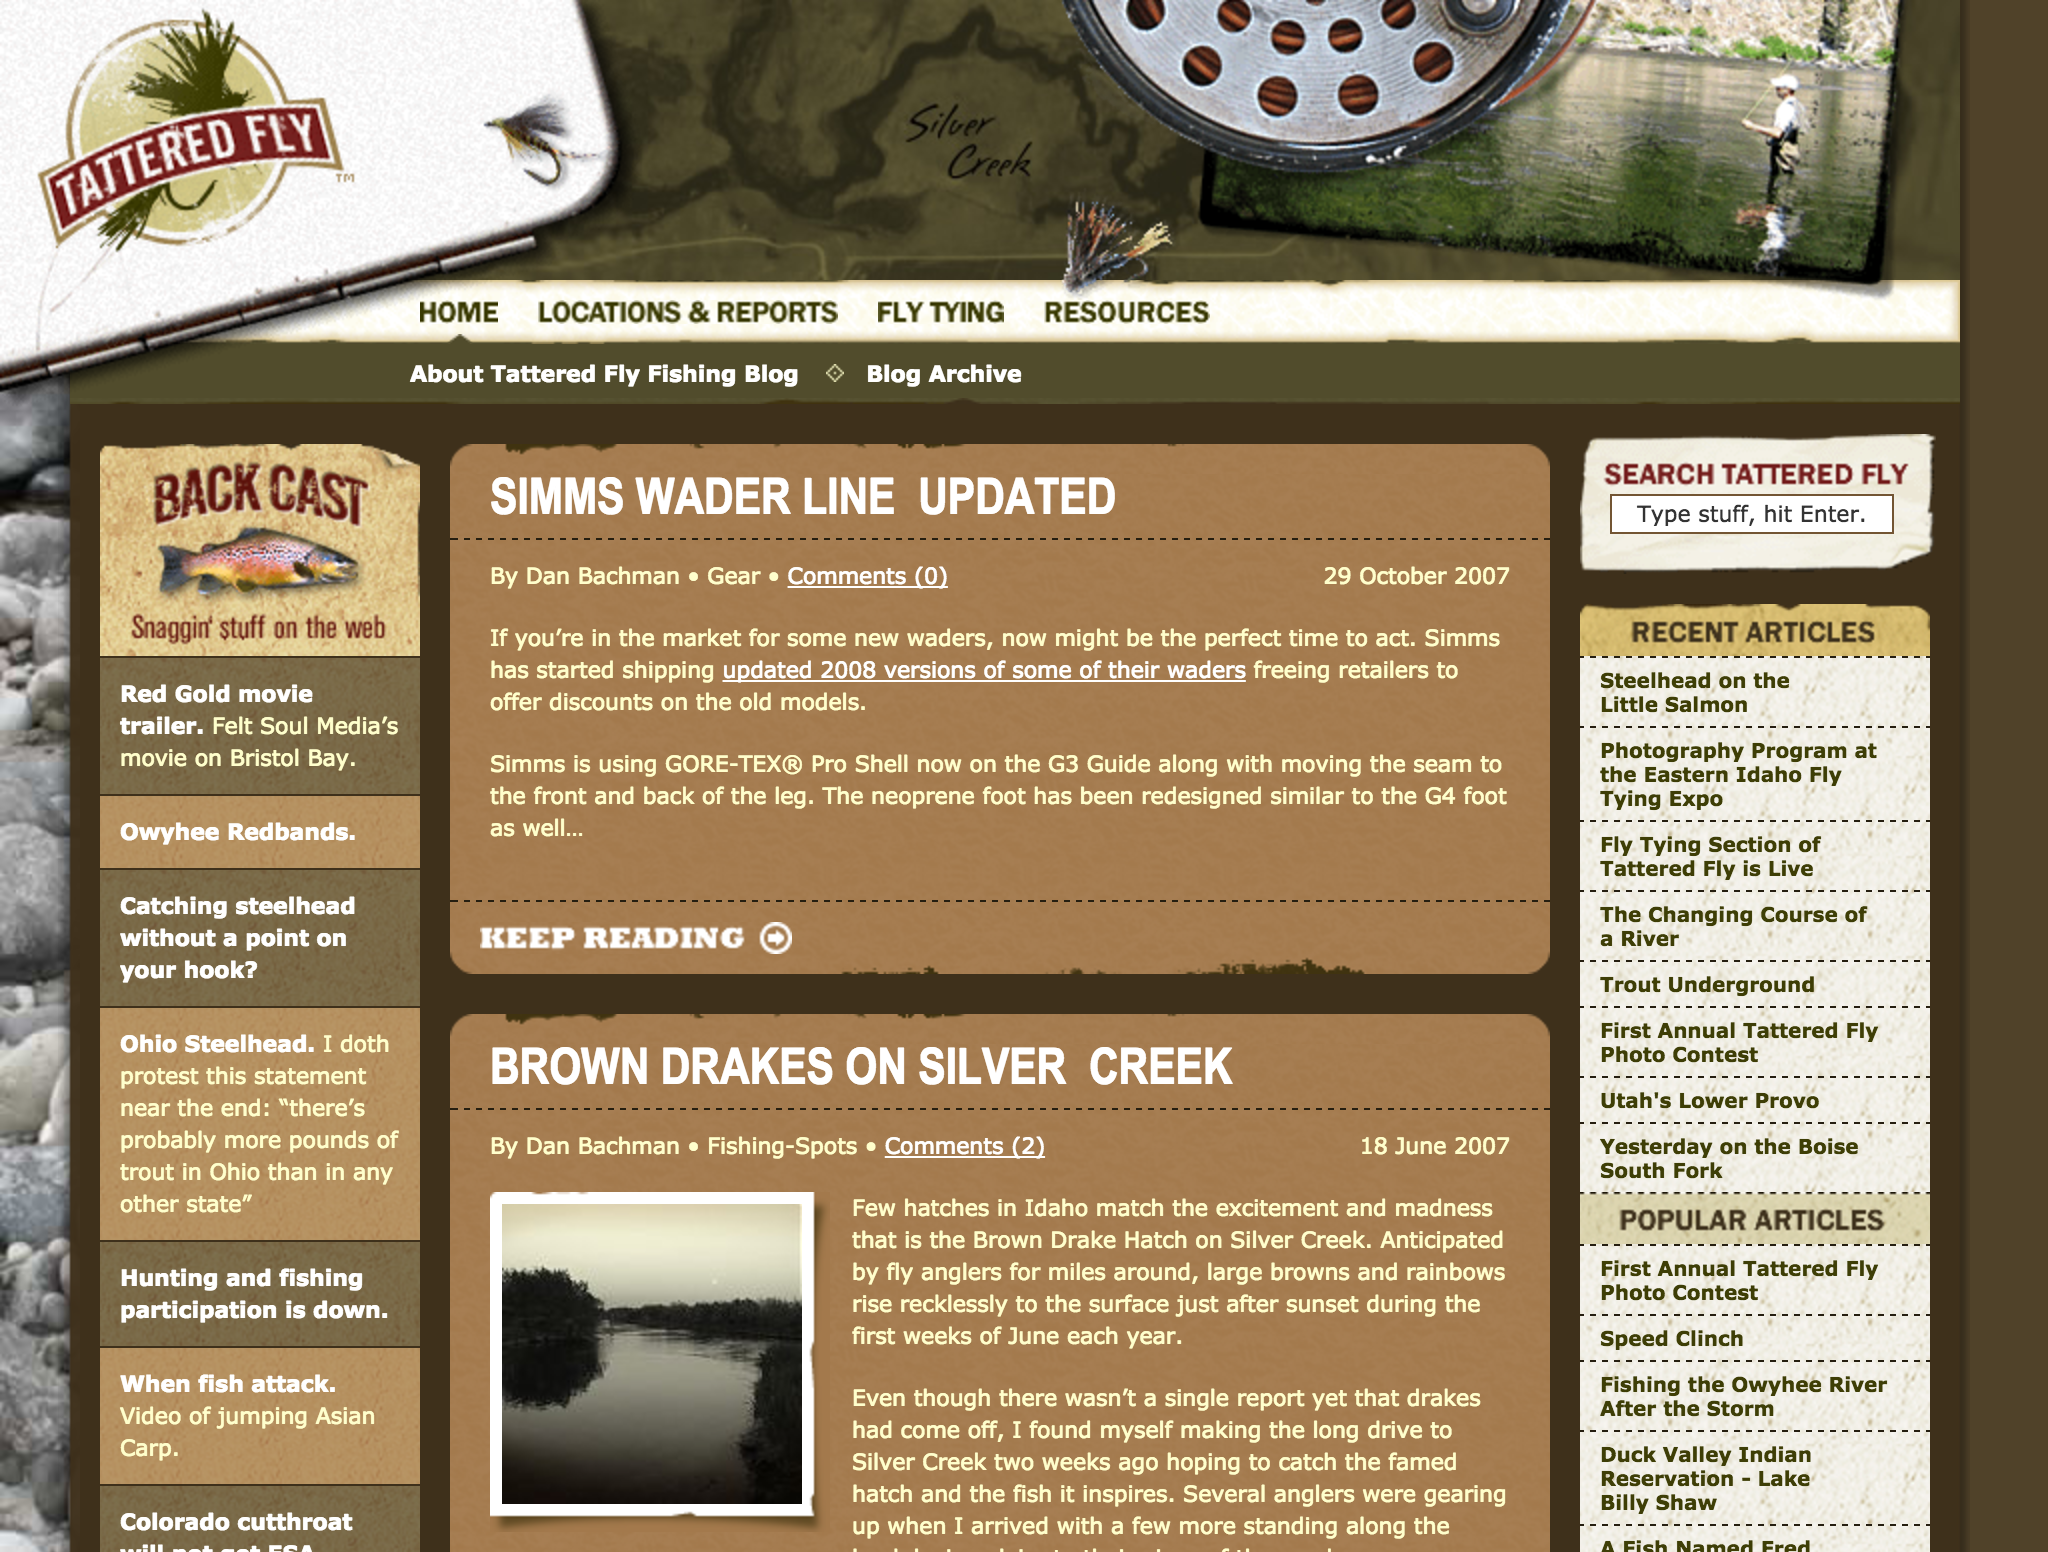 Image of the tatteredfly.com home page after the redesign